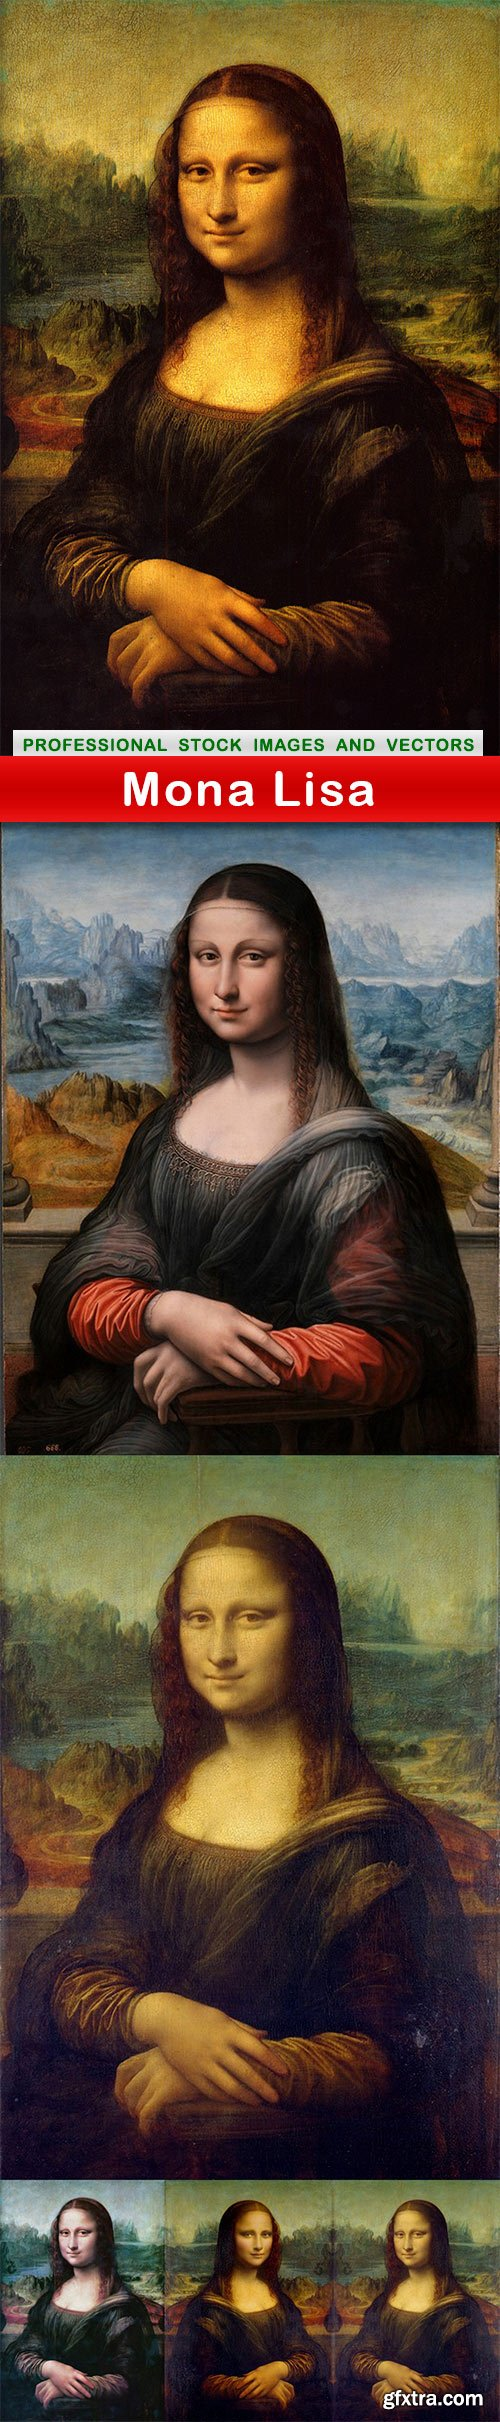 Mona Lisa - 5 UHQ JPEG